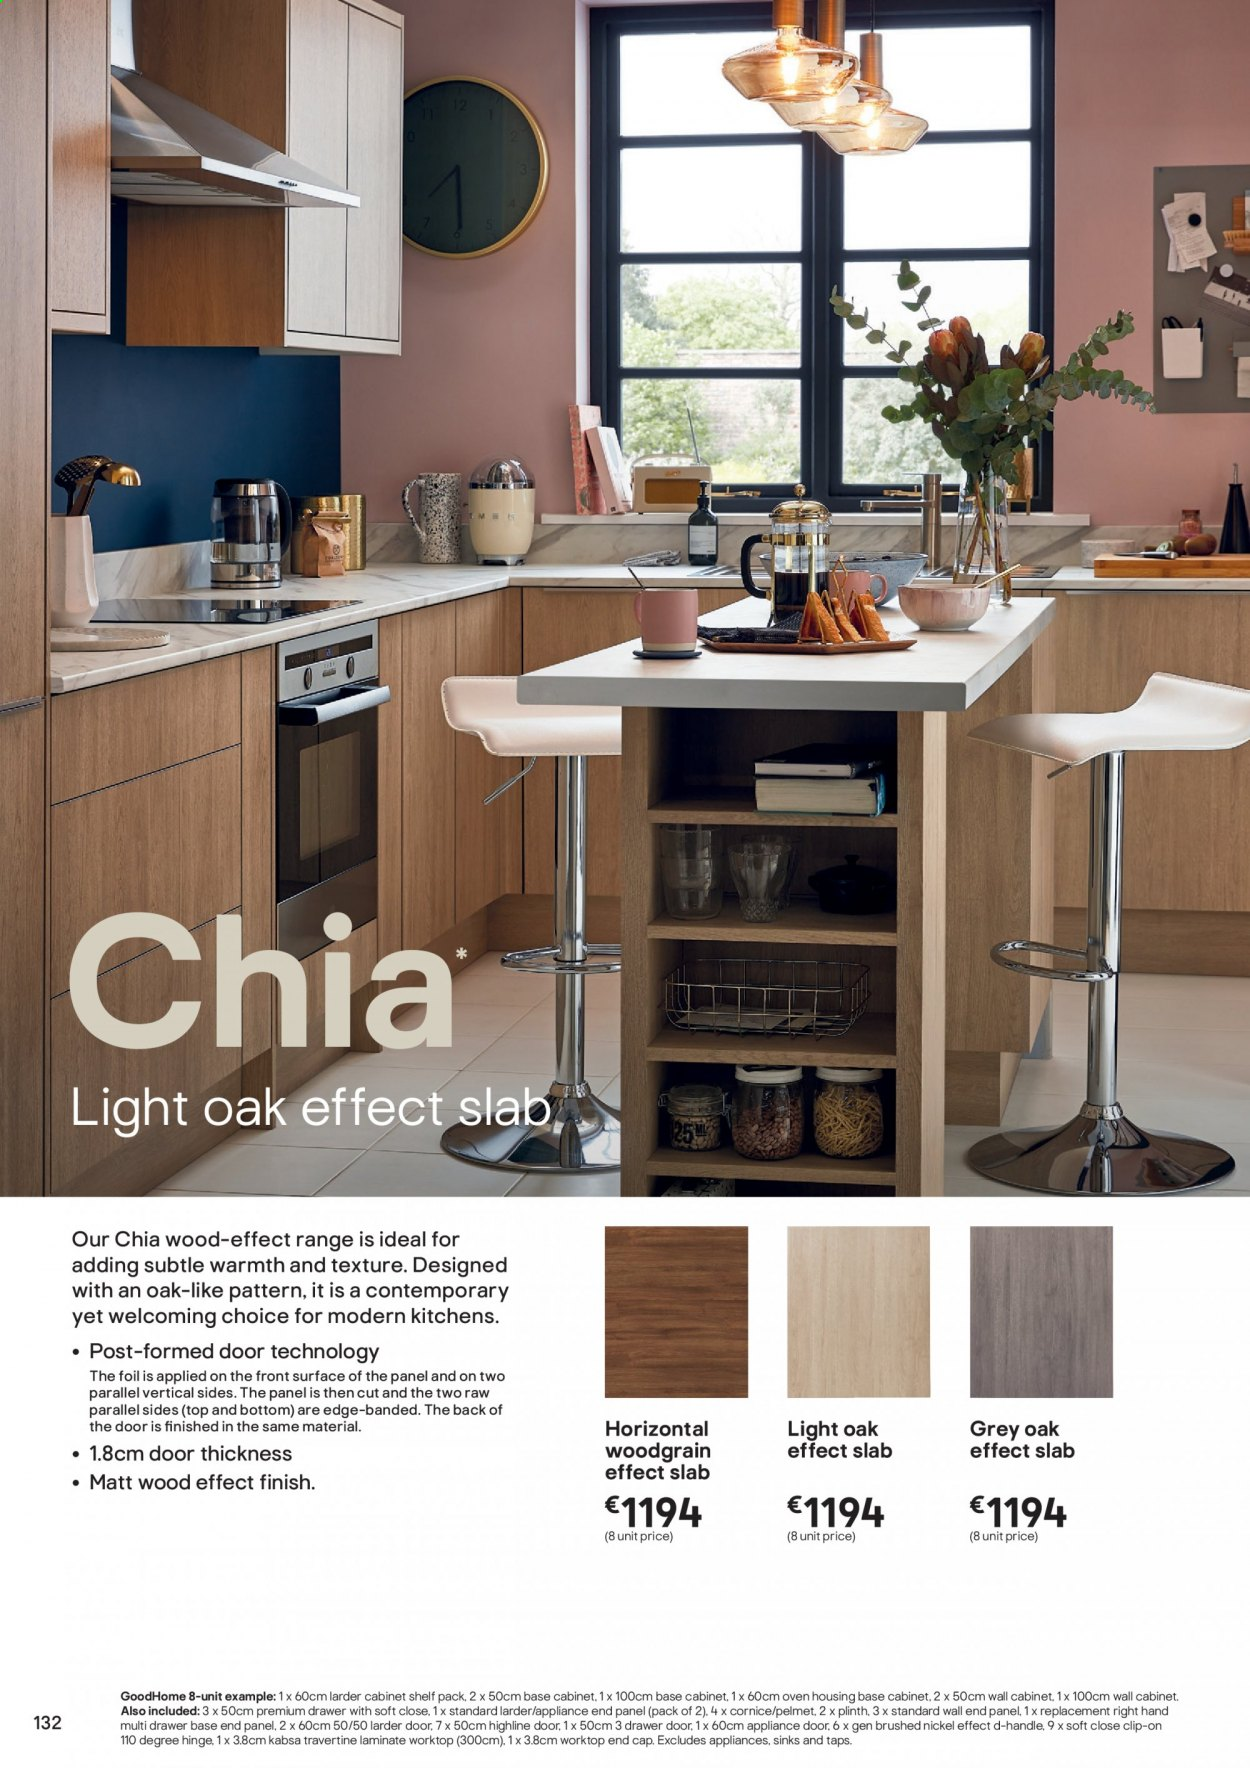 B&Q offer  - Sales products - cabinet, cap, door, drawer, shelf, surface, wall cabinet, handles, oven. Page 132.